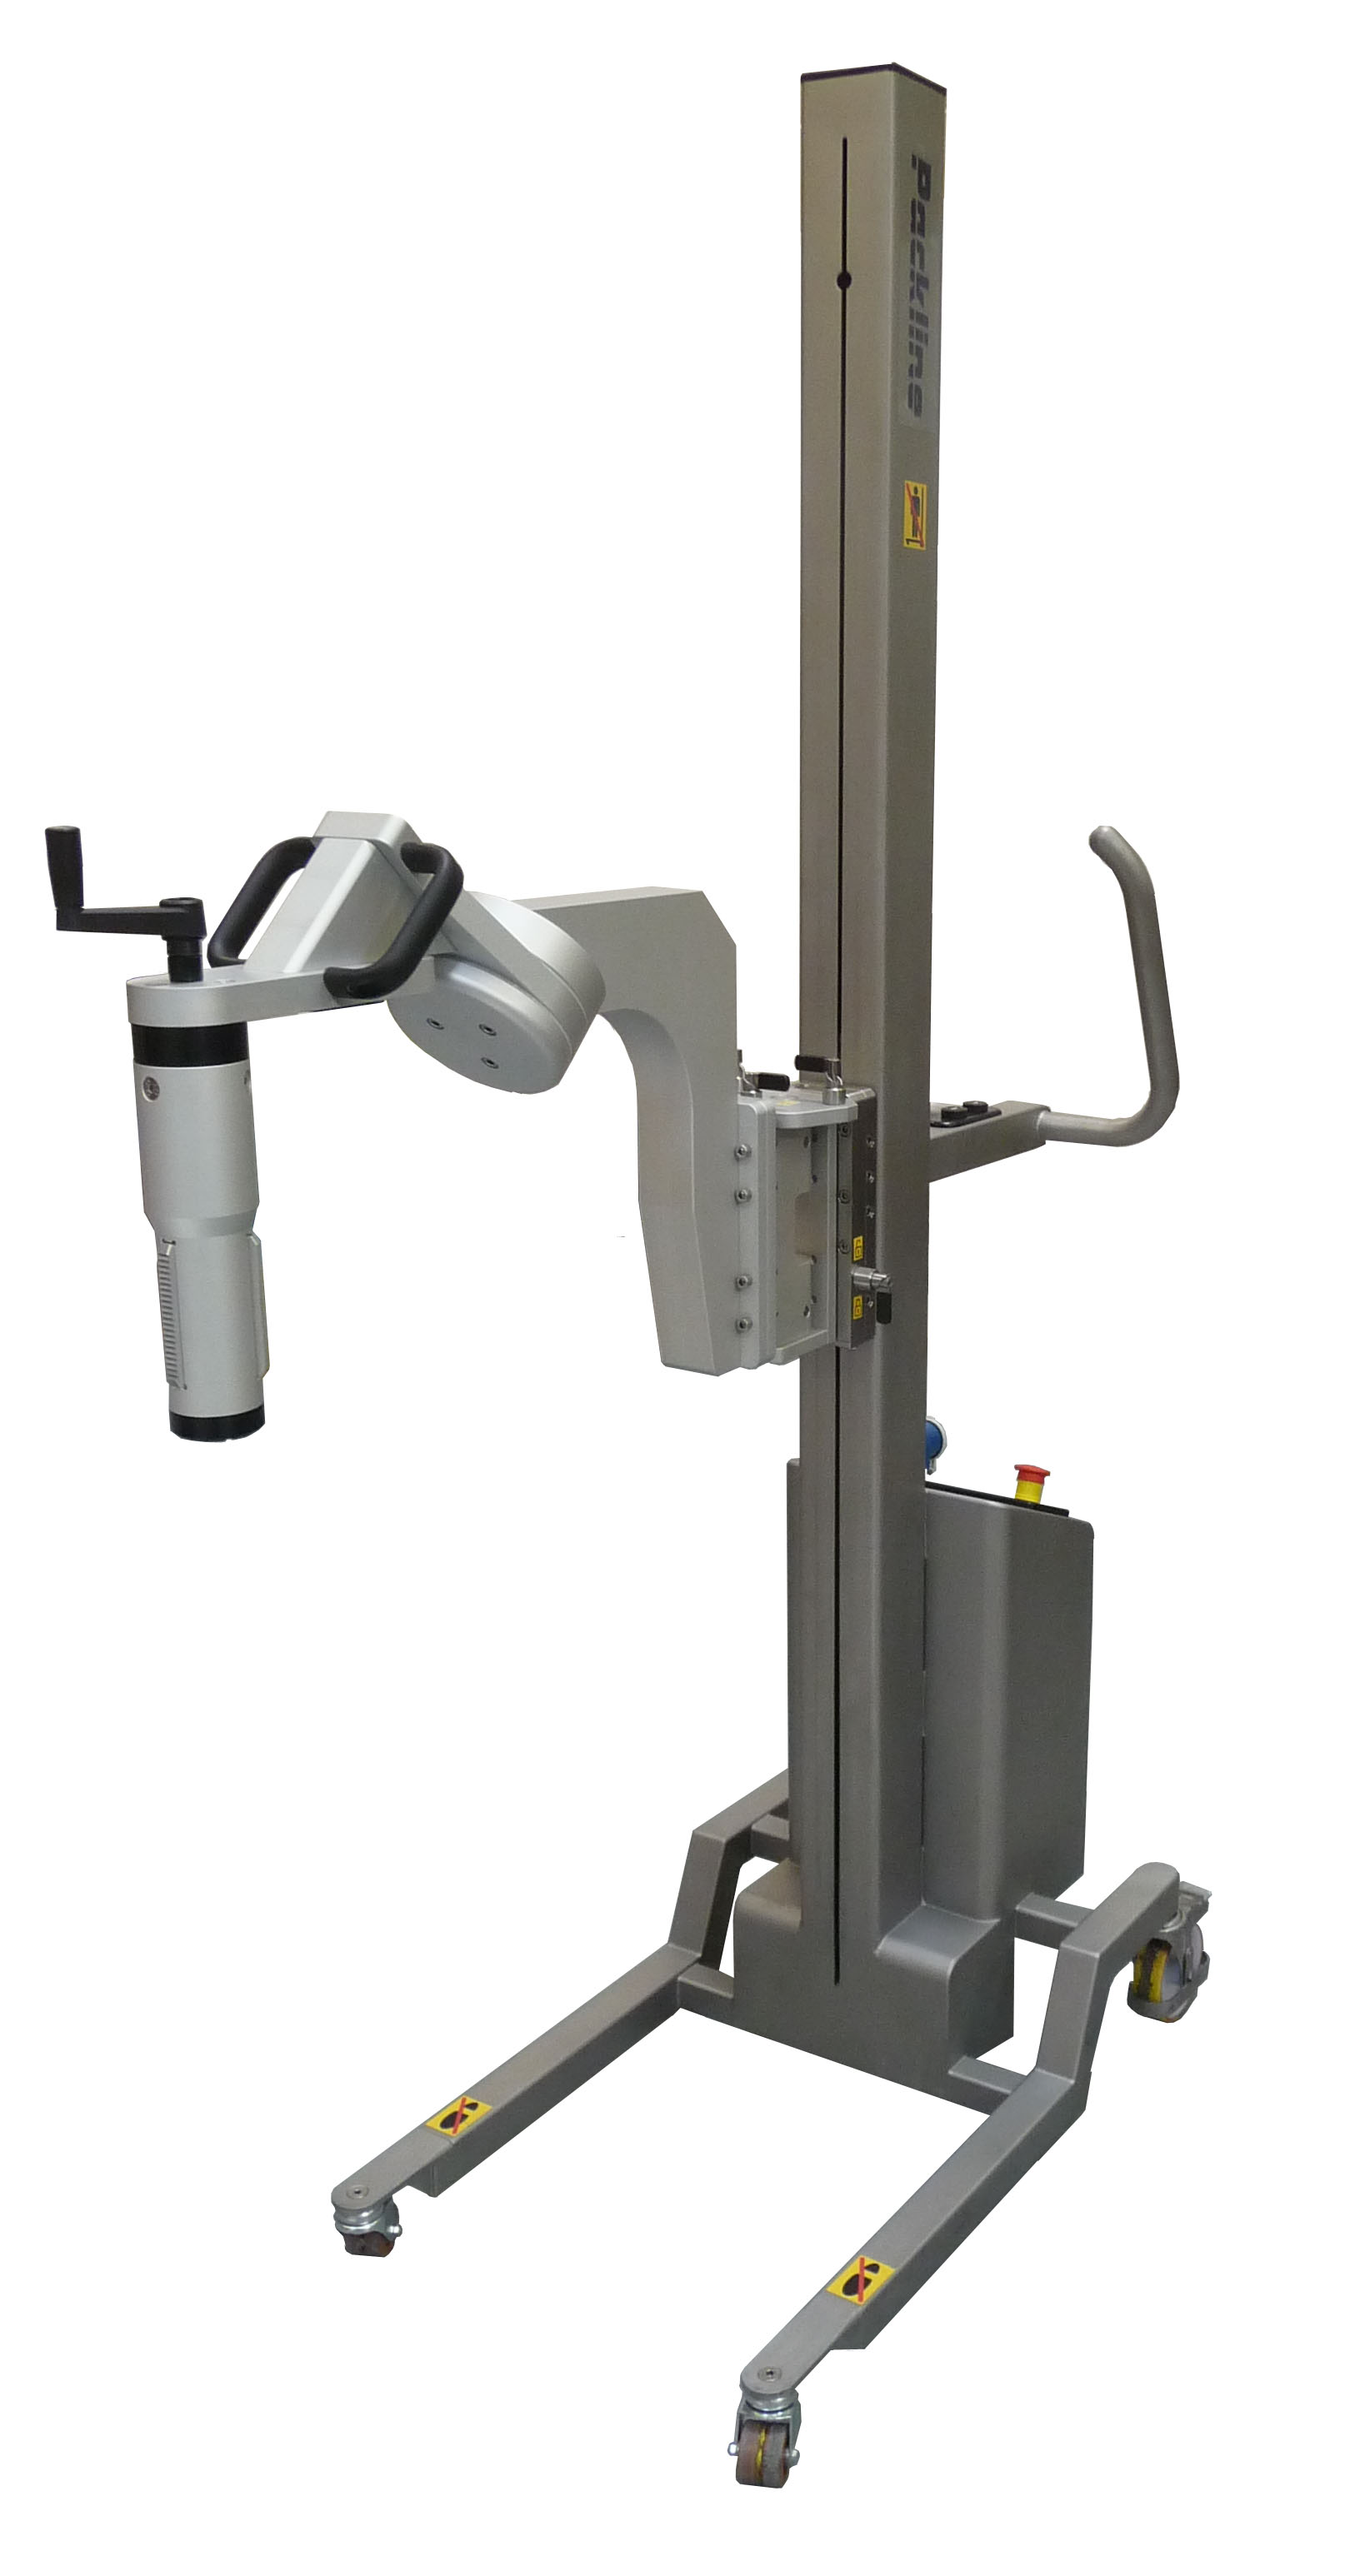 Packline Announce New Lifting Attachment To Handle And